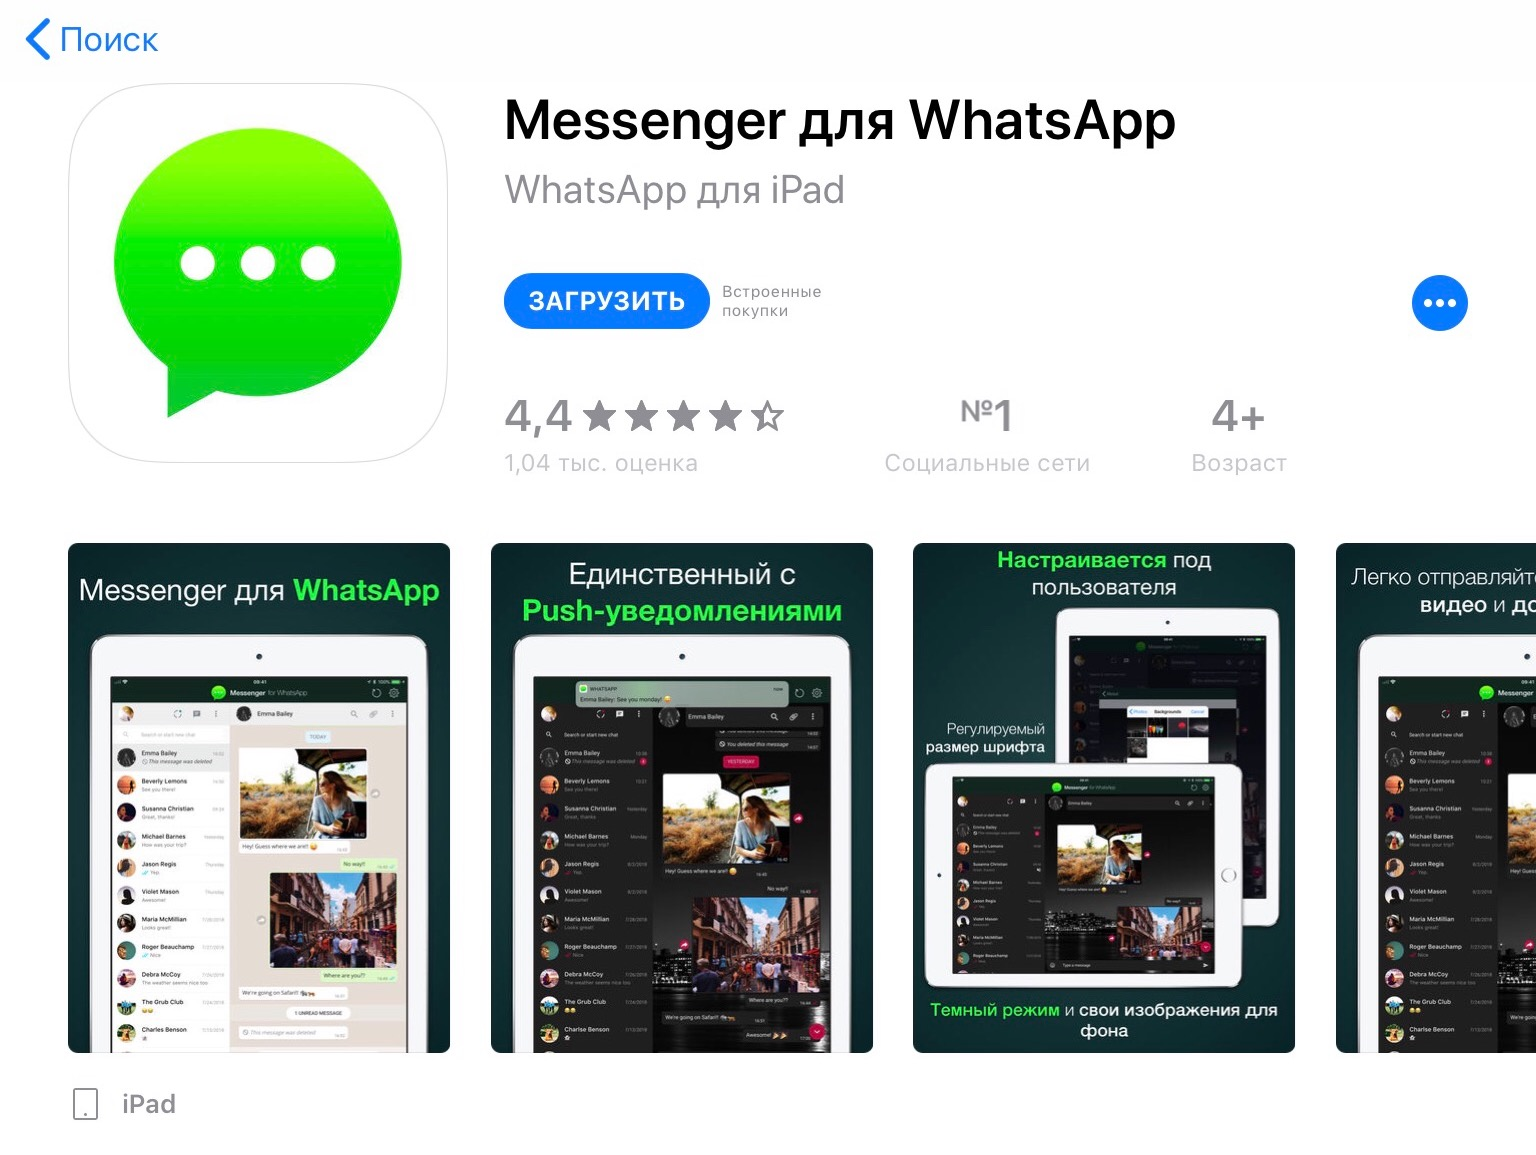 WhatsApp for iPad started to charge by subscription